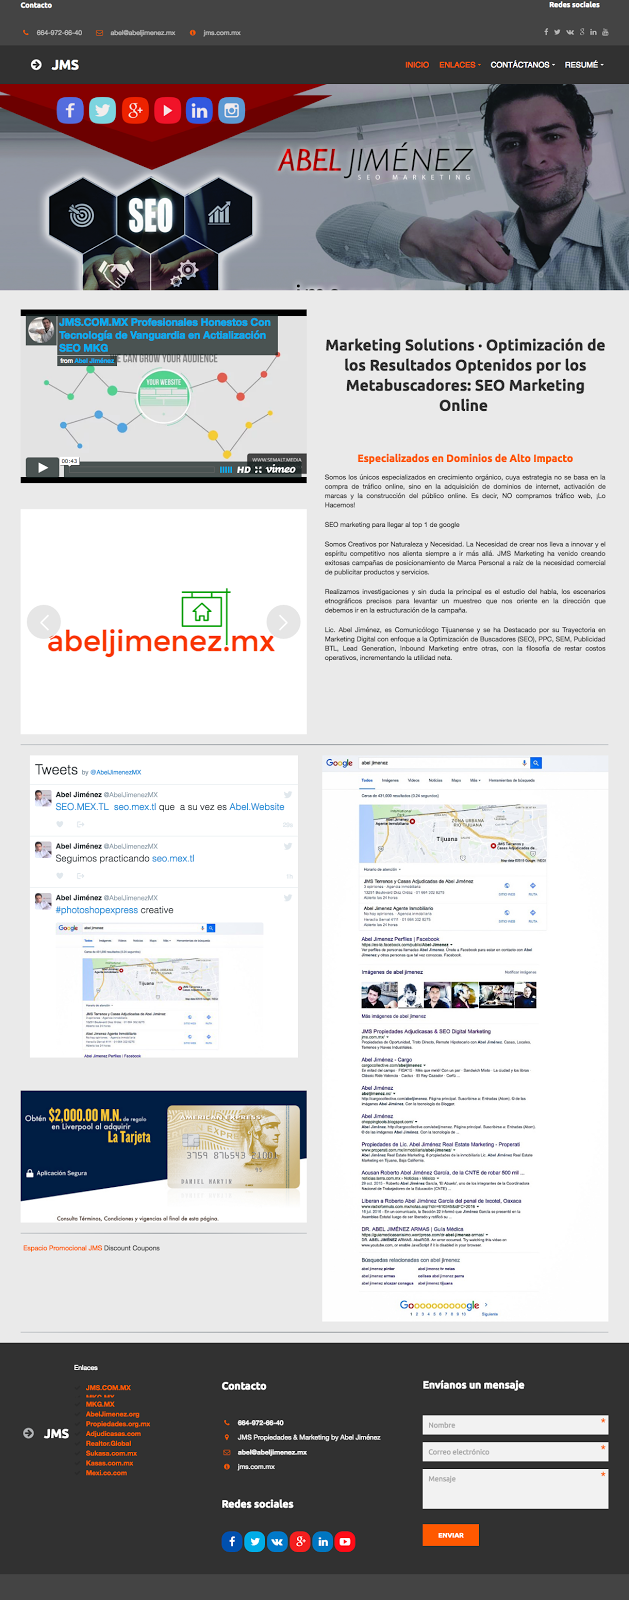 Abel Jimenez Nuevo portal Inmobiliario  Marketing